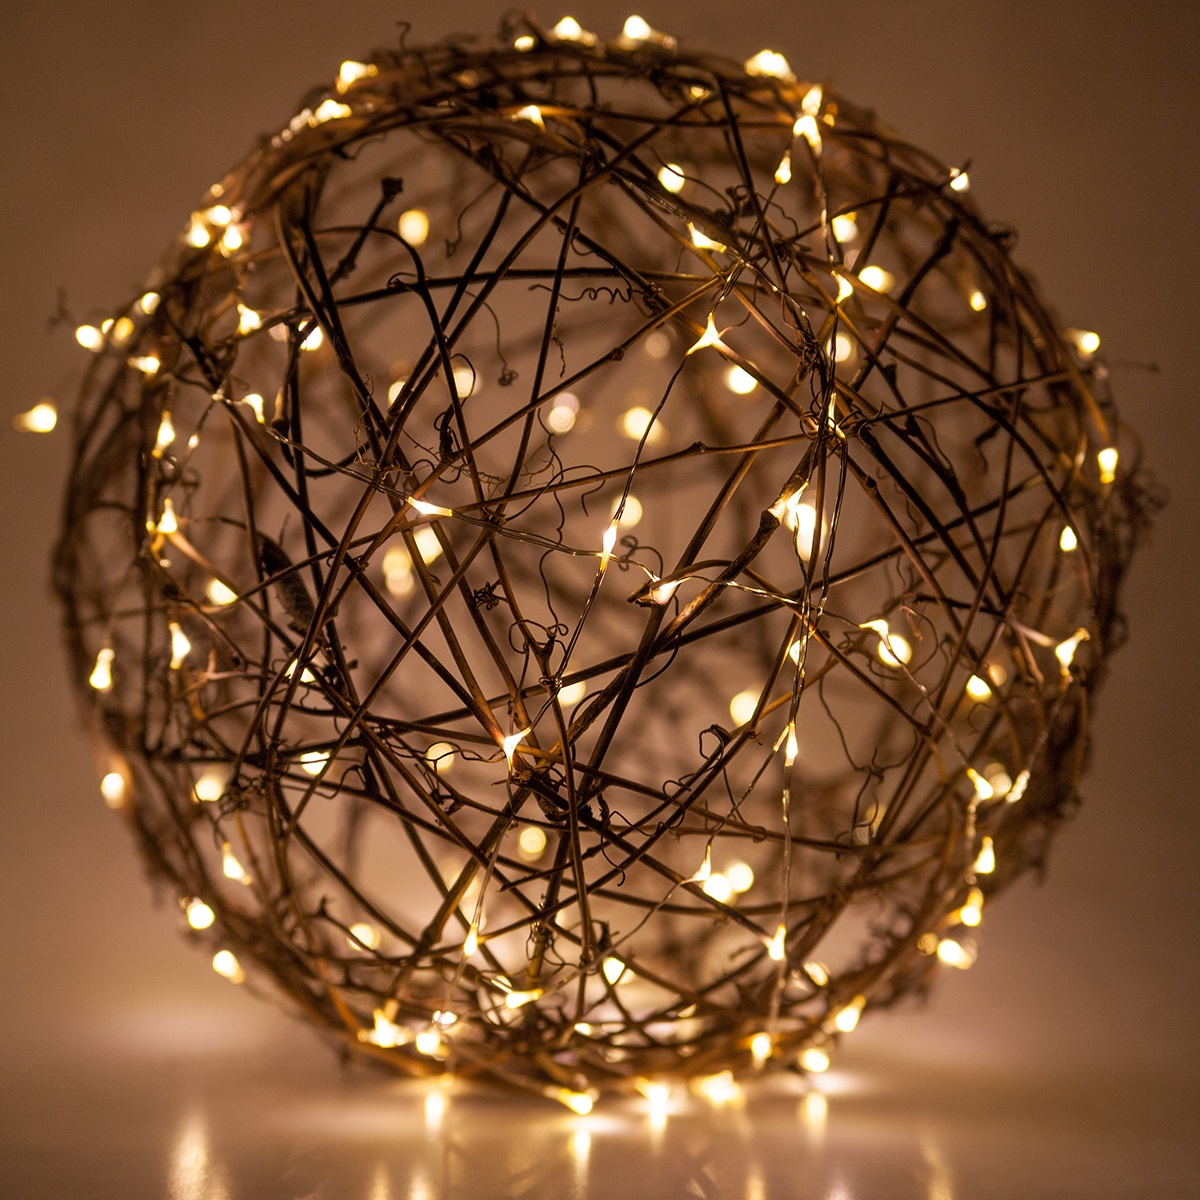 Grapevine Ball Wrapped with Fairy Lights